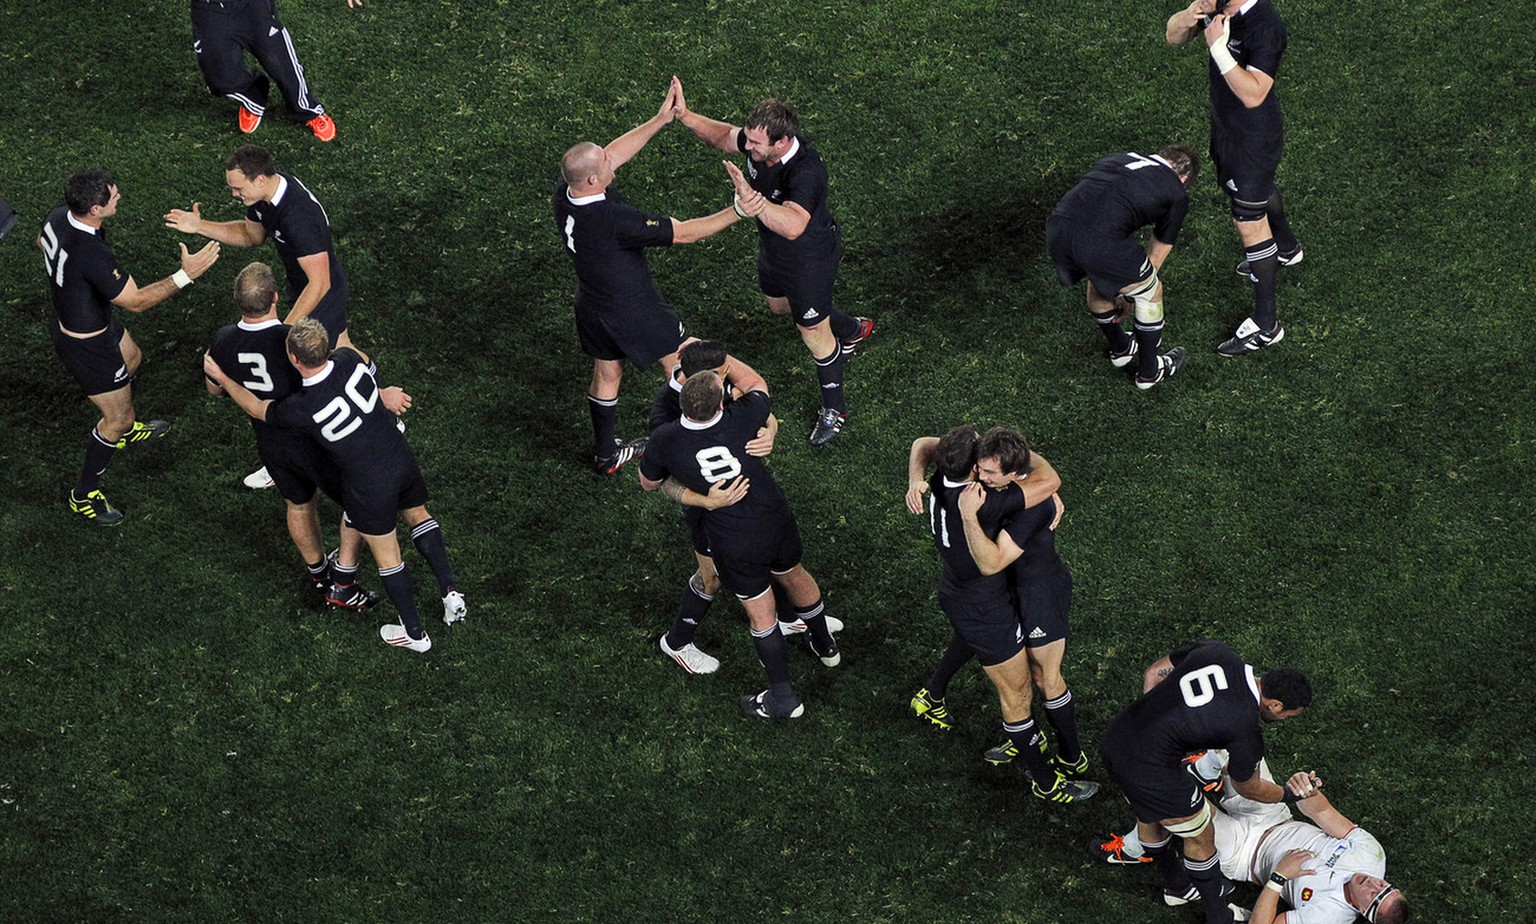 New Zealand All Blacks Jerome Kaino helps up France's Imanol Harinordoquy as his teammates celebrate after their Rugby World Cup final win over France at Eden Park in Auckland, New Zealand, Sunday, Oct. 23, 2011. (KEYSTONE/AP Photo/Natacha Pisarenko)